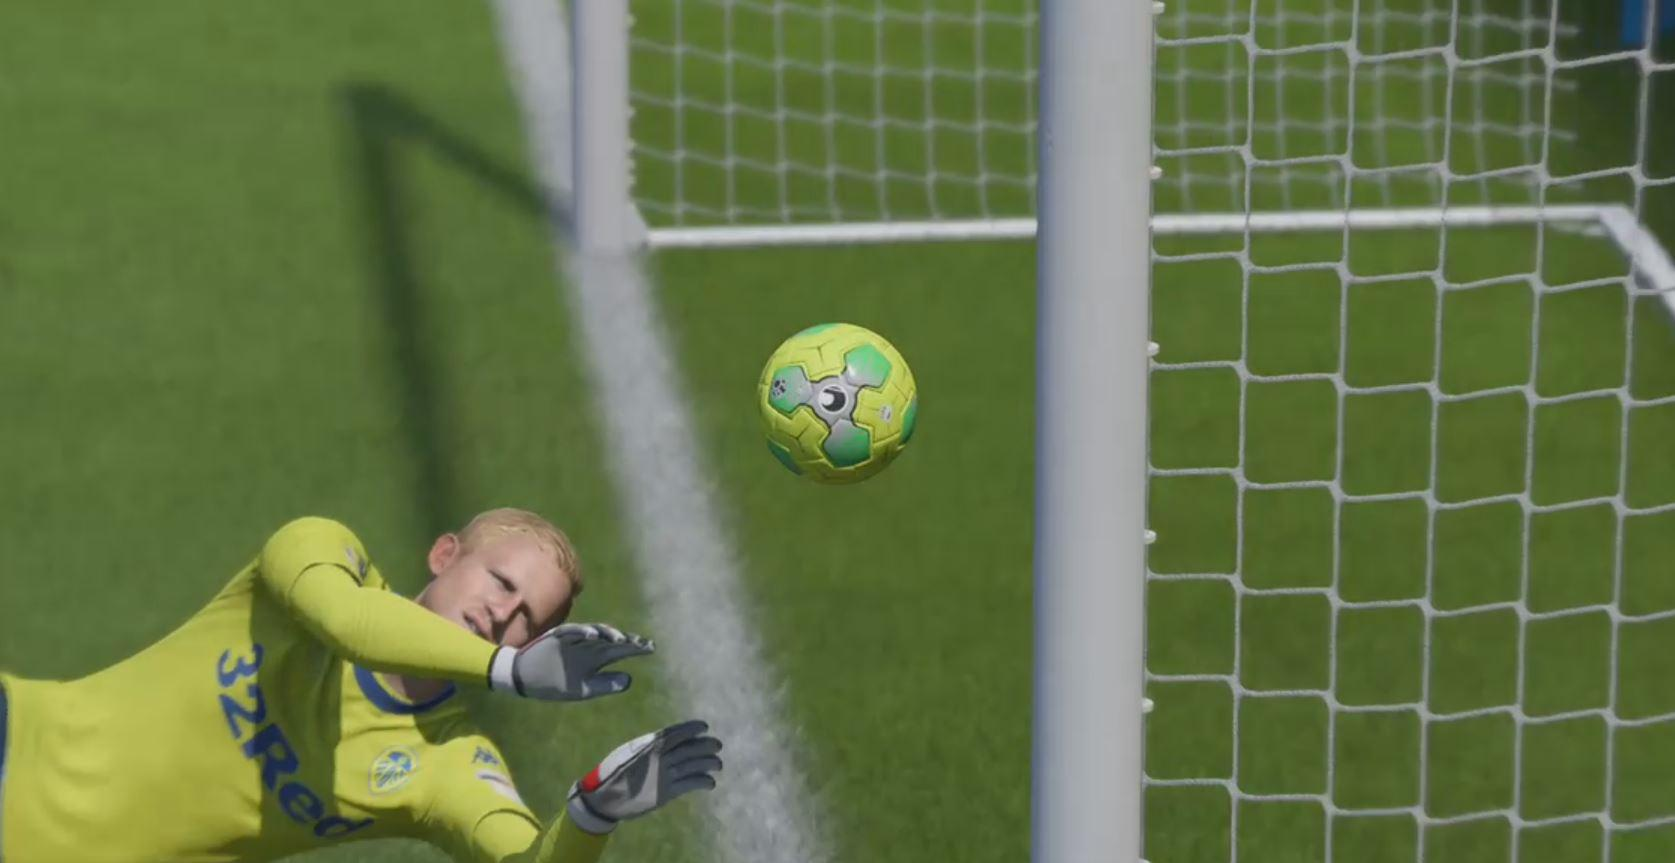 The ball flies towards the net – surely a goal is imminent?